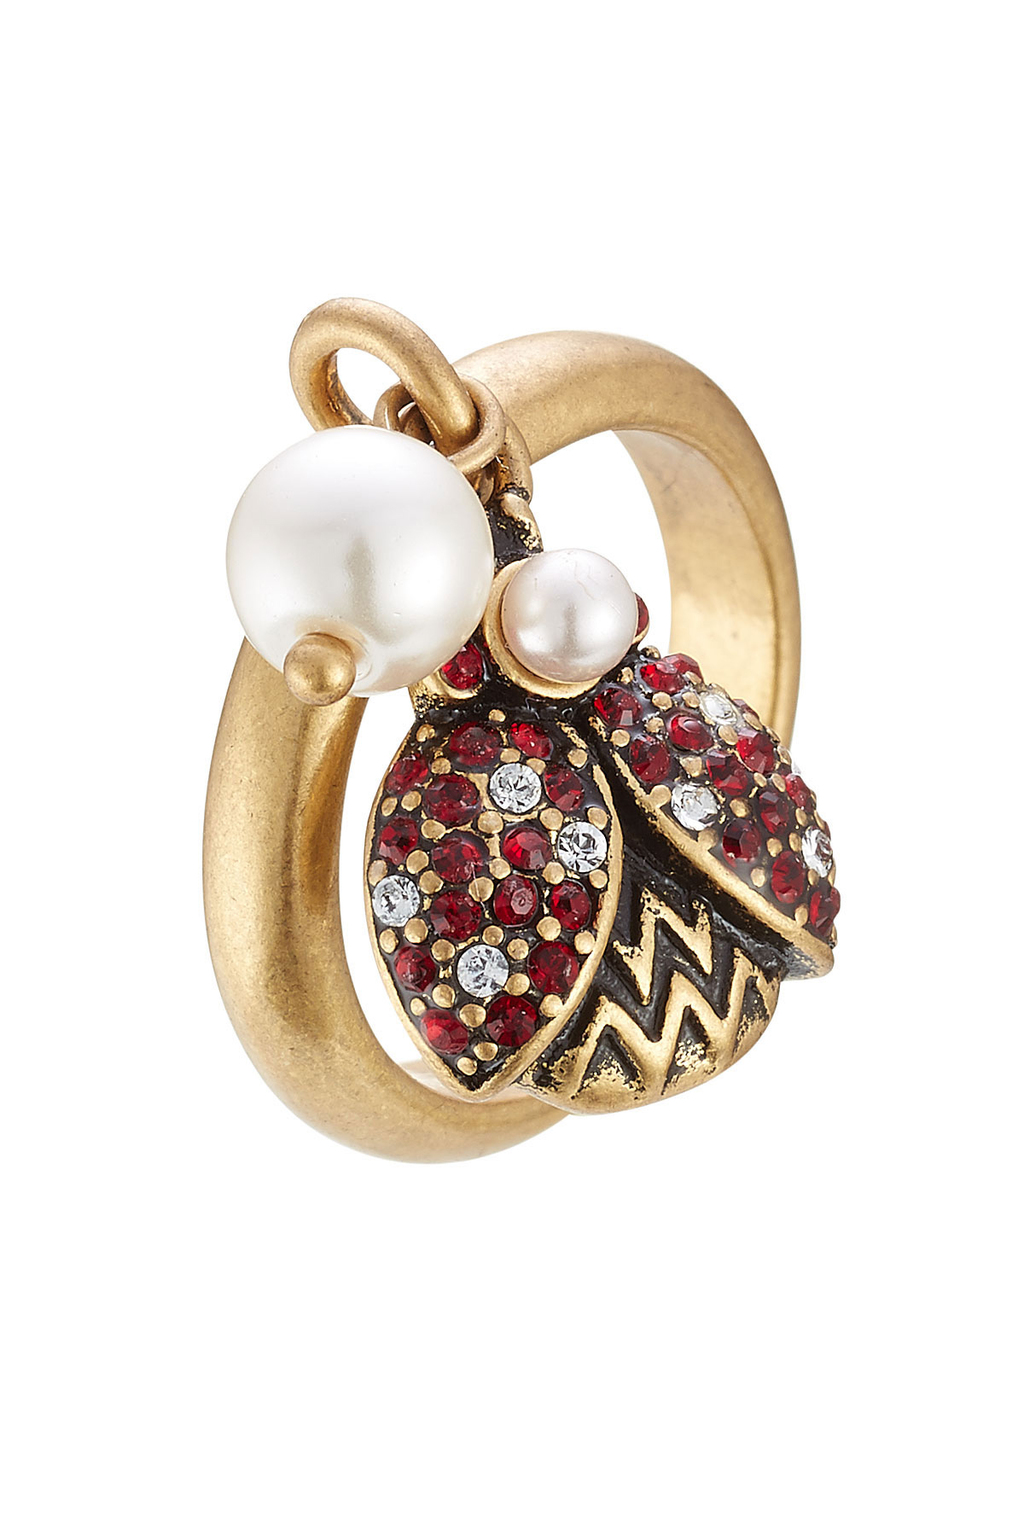 Embellished Ladybird Ring - predominant colour: gold; occasions: evening, occasion; style: band; size: standard; material: chain/metal; finish: metallic; embellishment: jewels/stone; season: a/w 2016; wardrobe: event